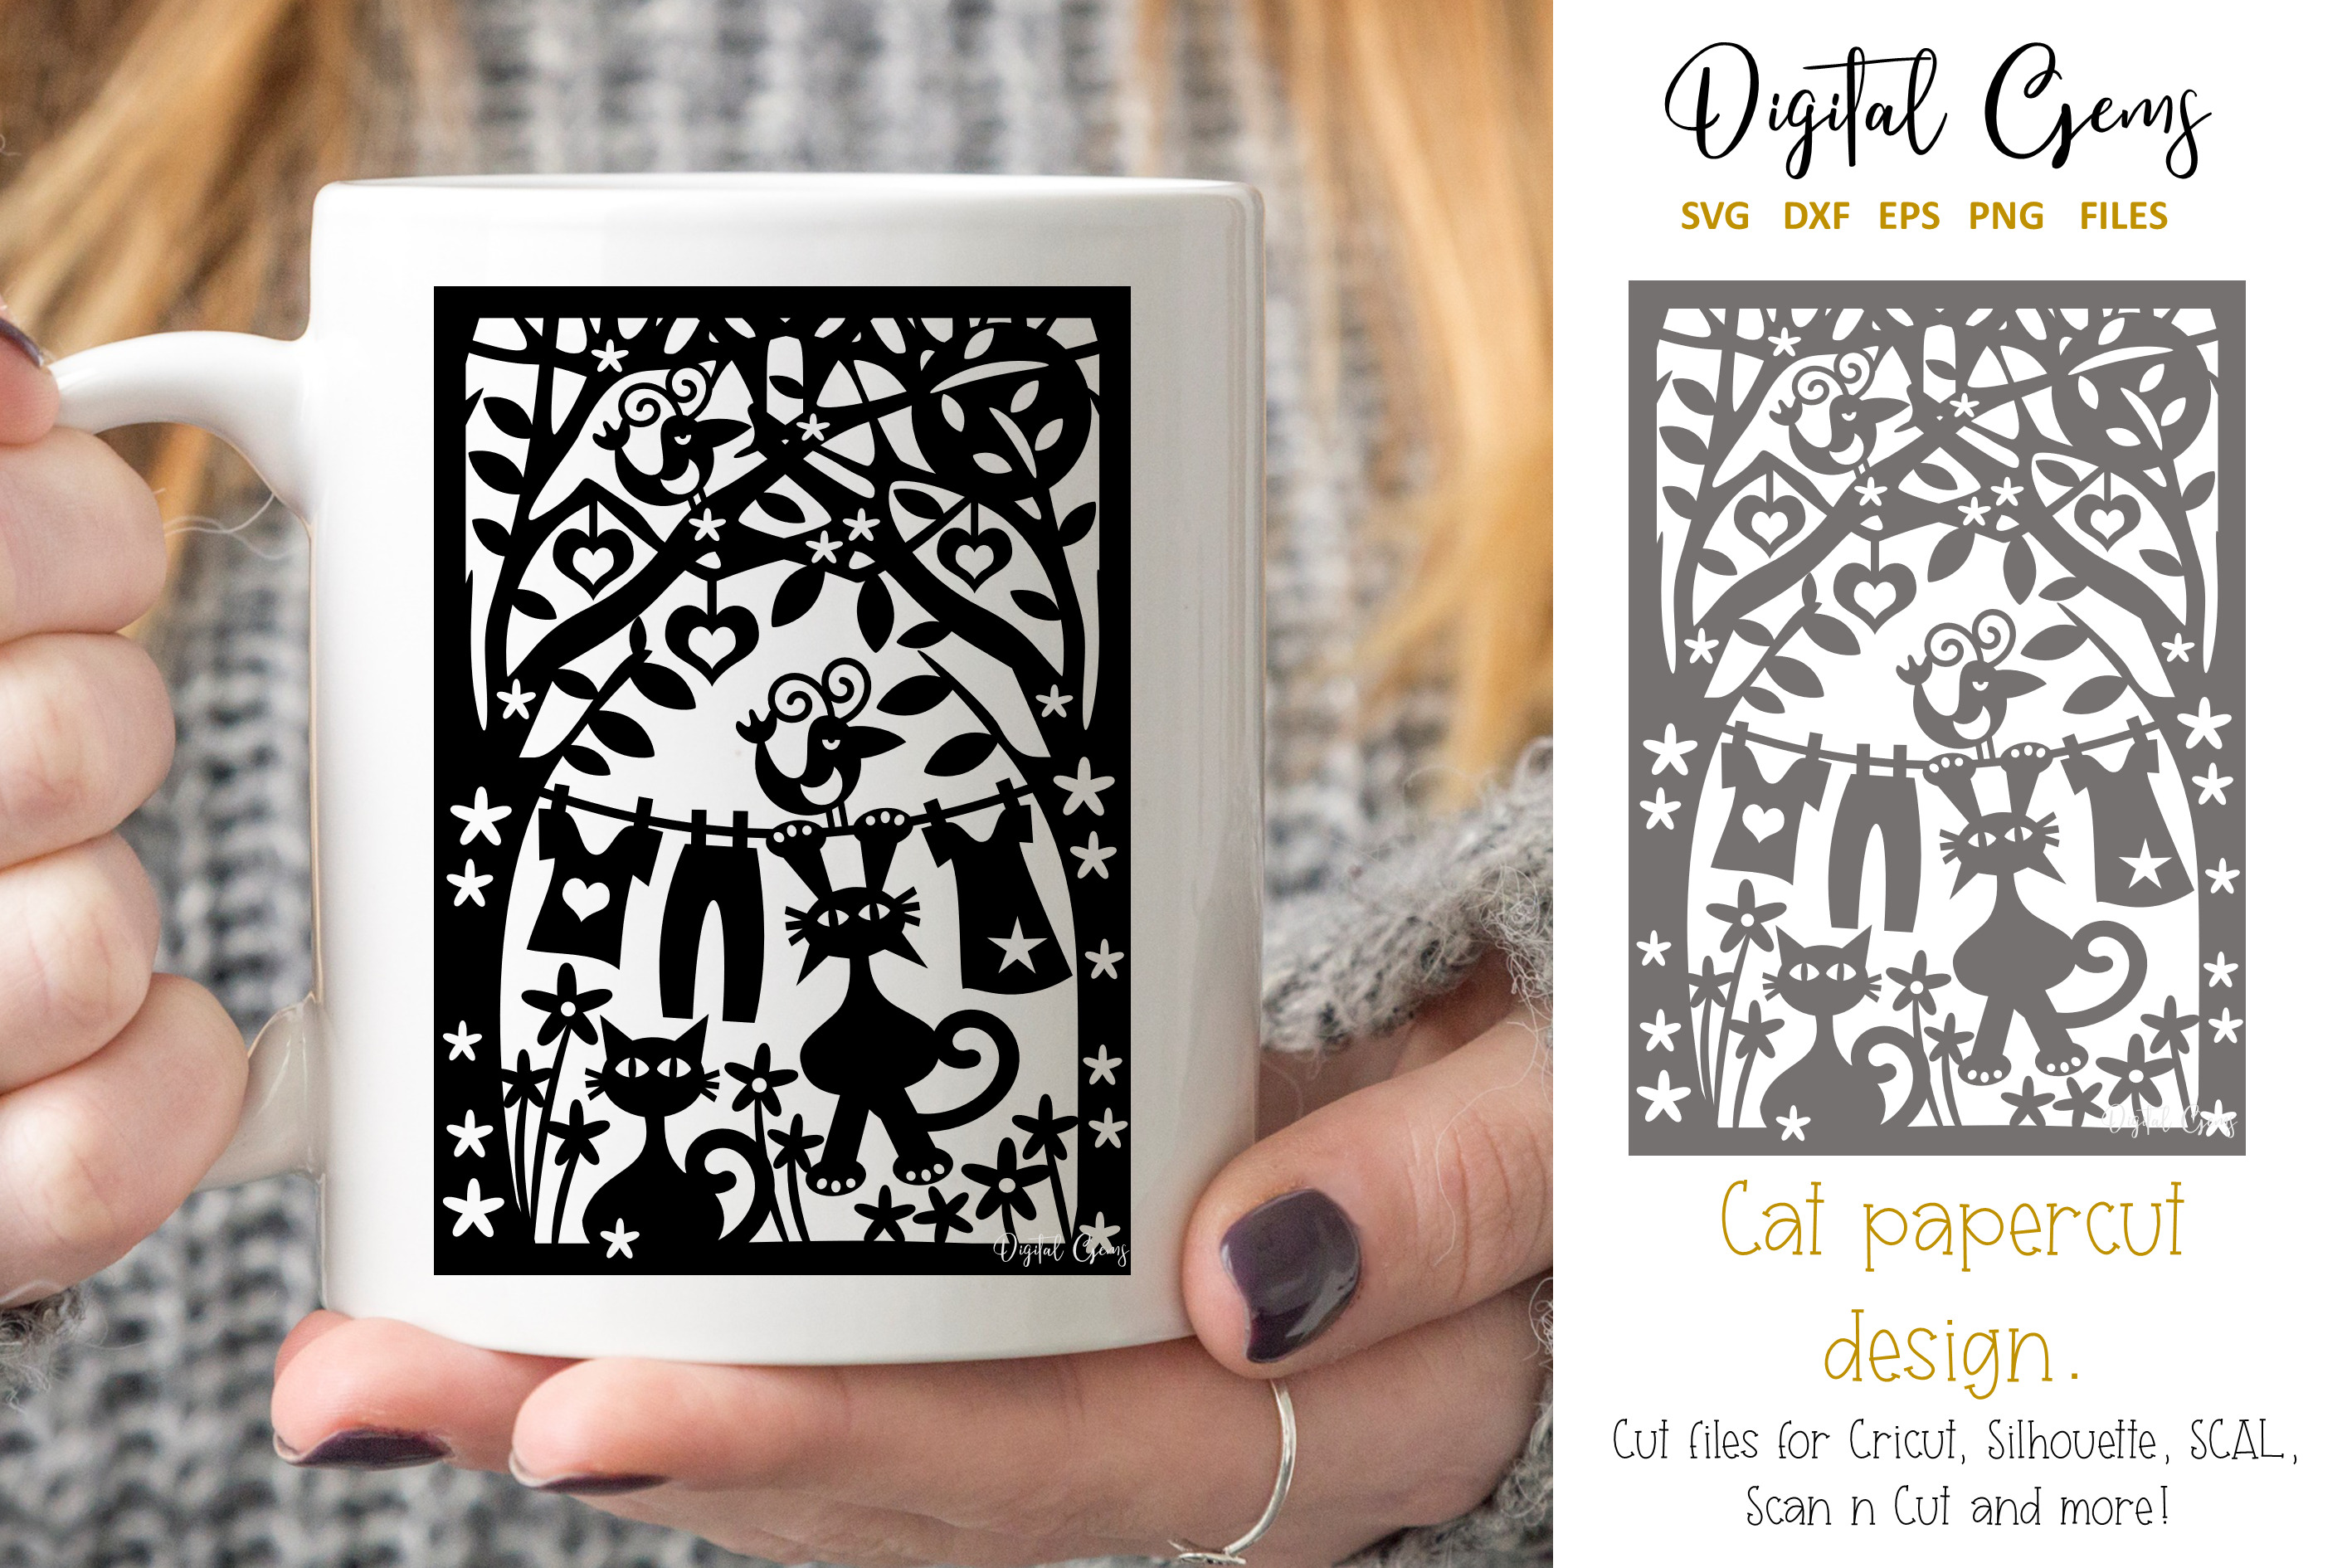 Download Free Cat Papercut Design Graphic By Digital Gems Creative Fabrica for Cricut Explore, Silhouette and other cutting machines.